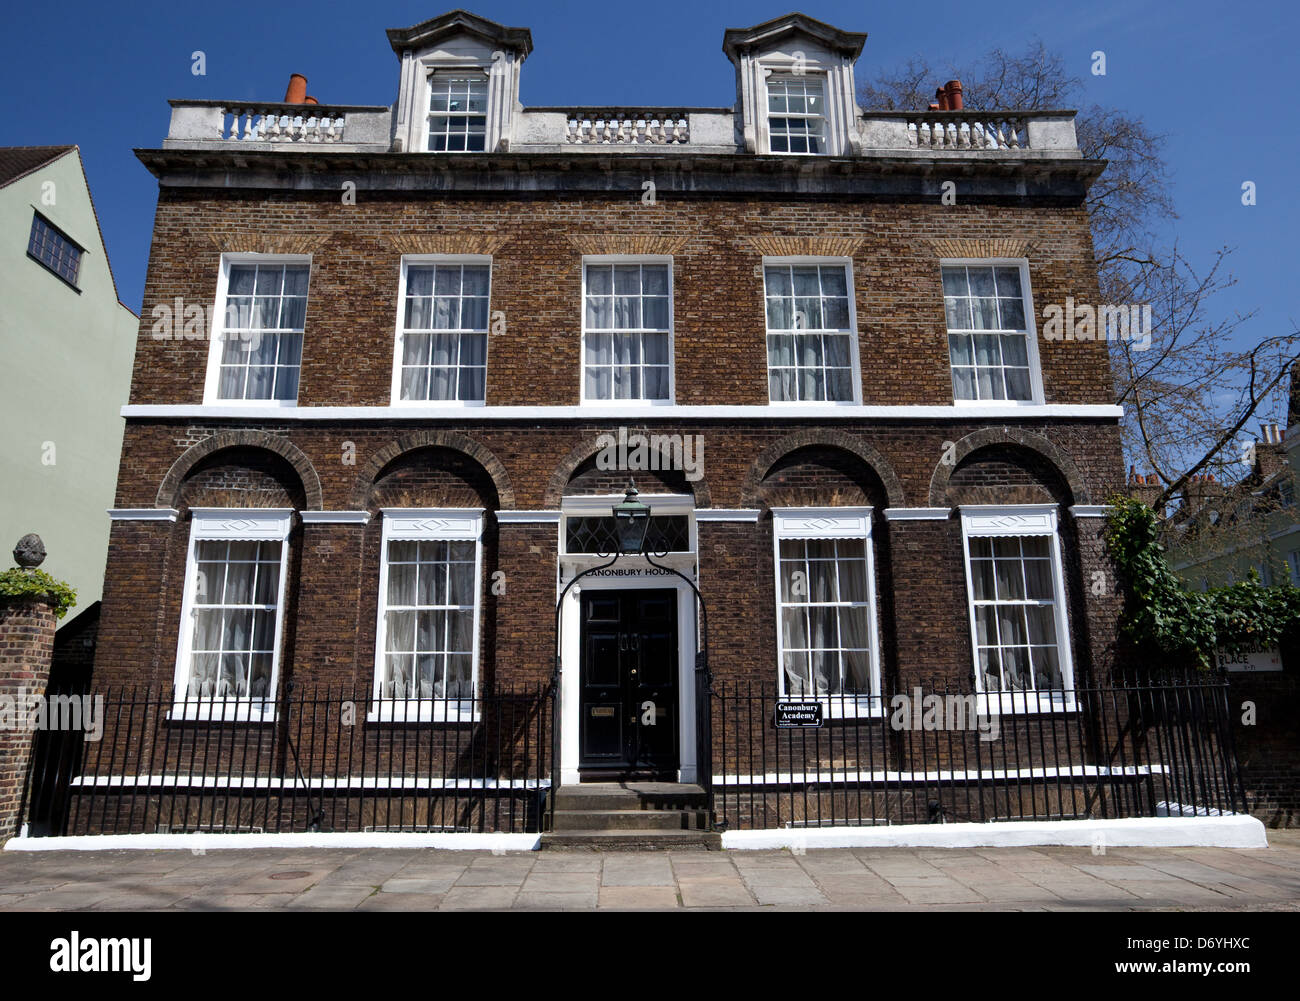 Canonbury House in Islington, London dates in part from the sixteenth century - Stock Image